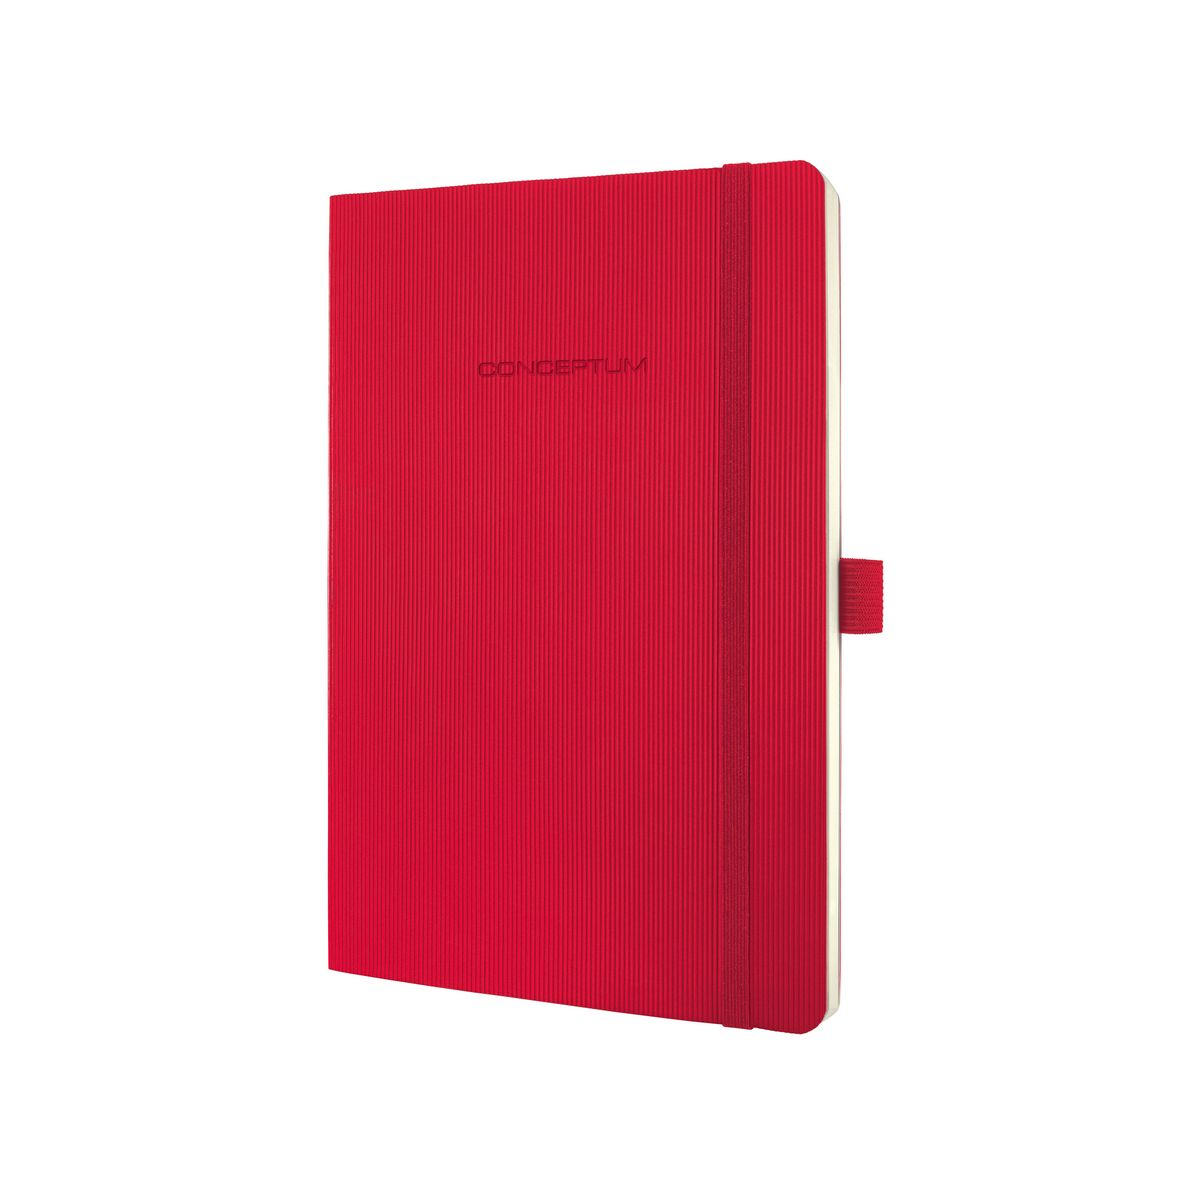 CONCEPTUM Softcover 135x210x14mm RD